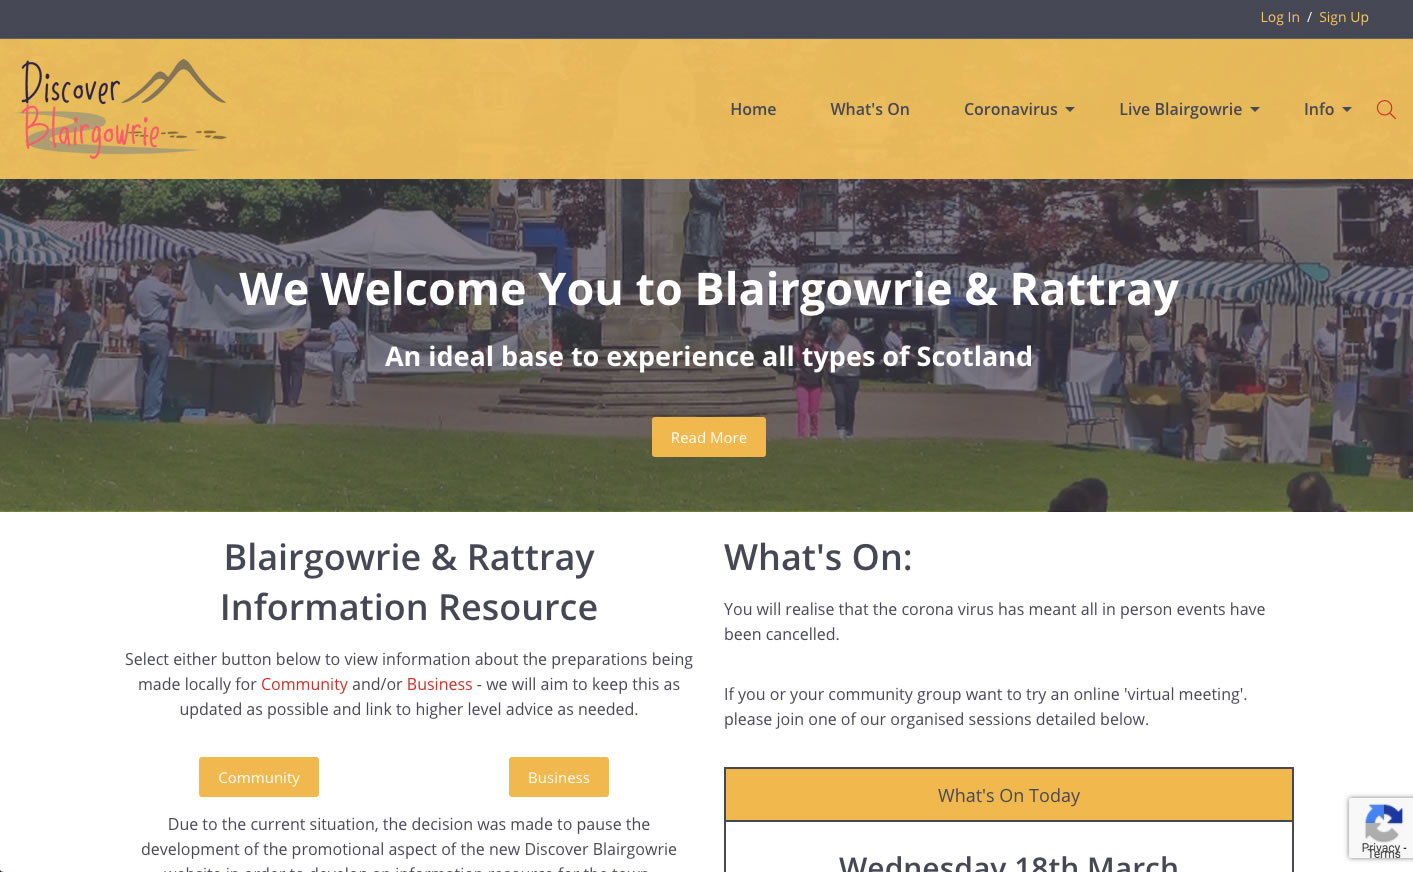 Discover Blairgowrie website